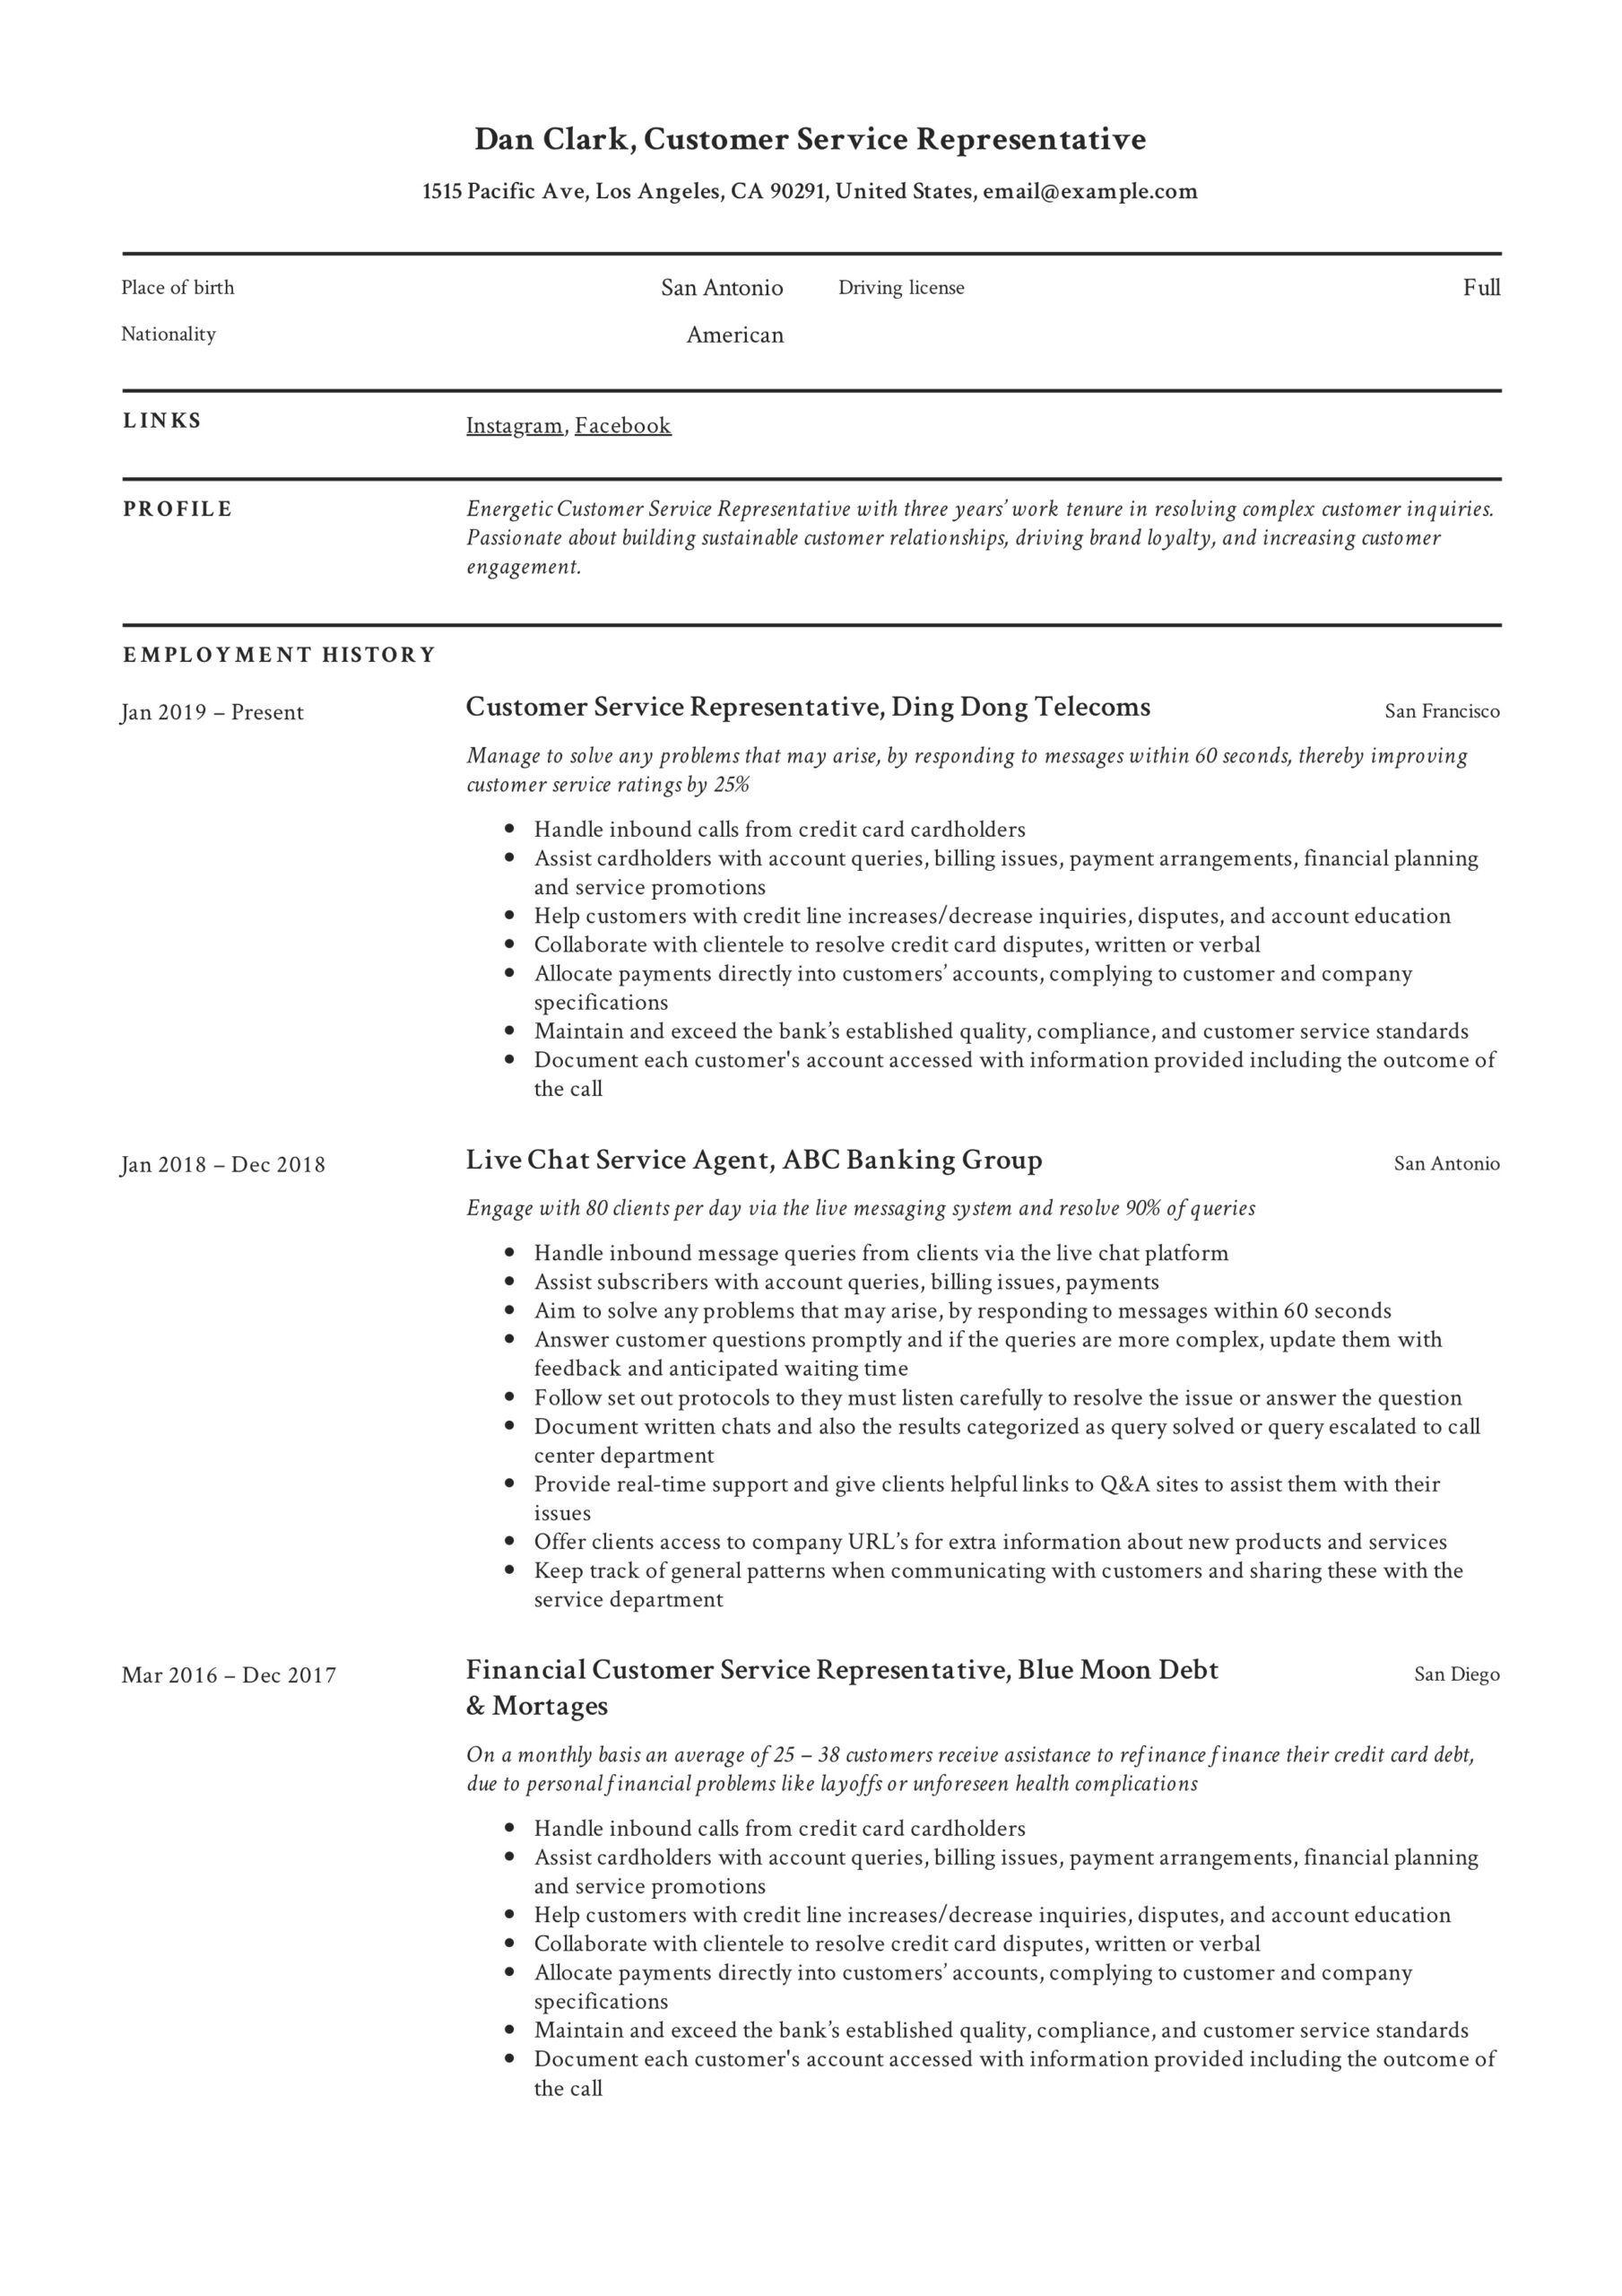 to customer service representative resume pdf samples overview expected graduation style Resume Customer Service Resume Overview